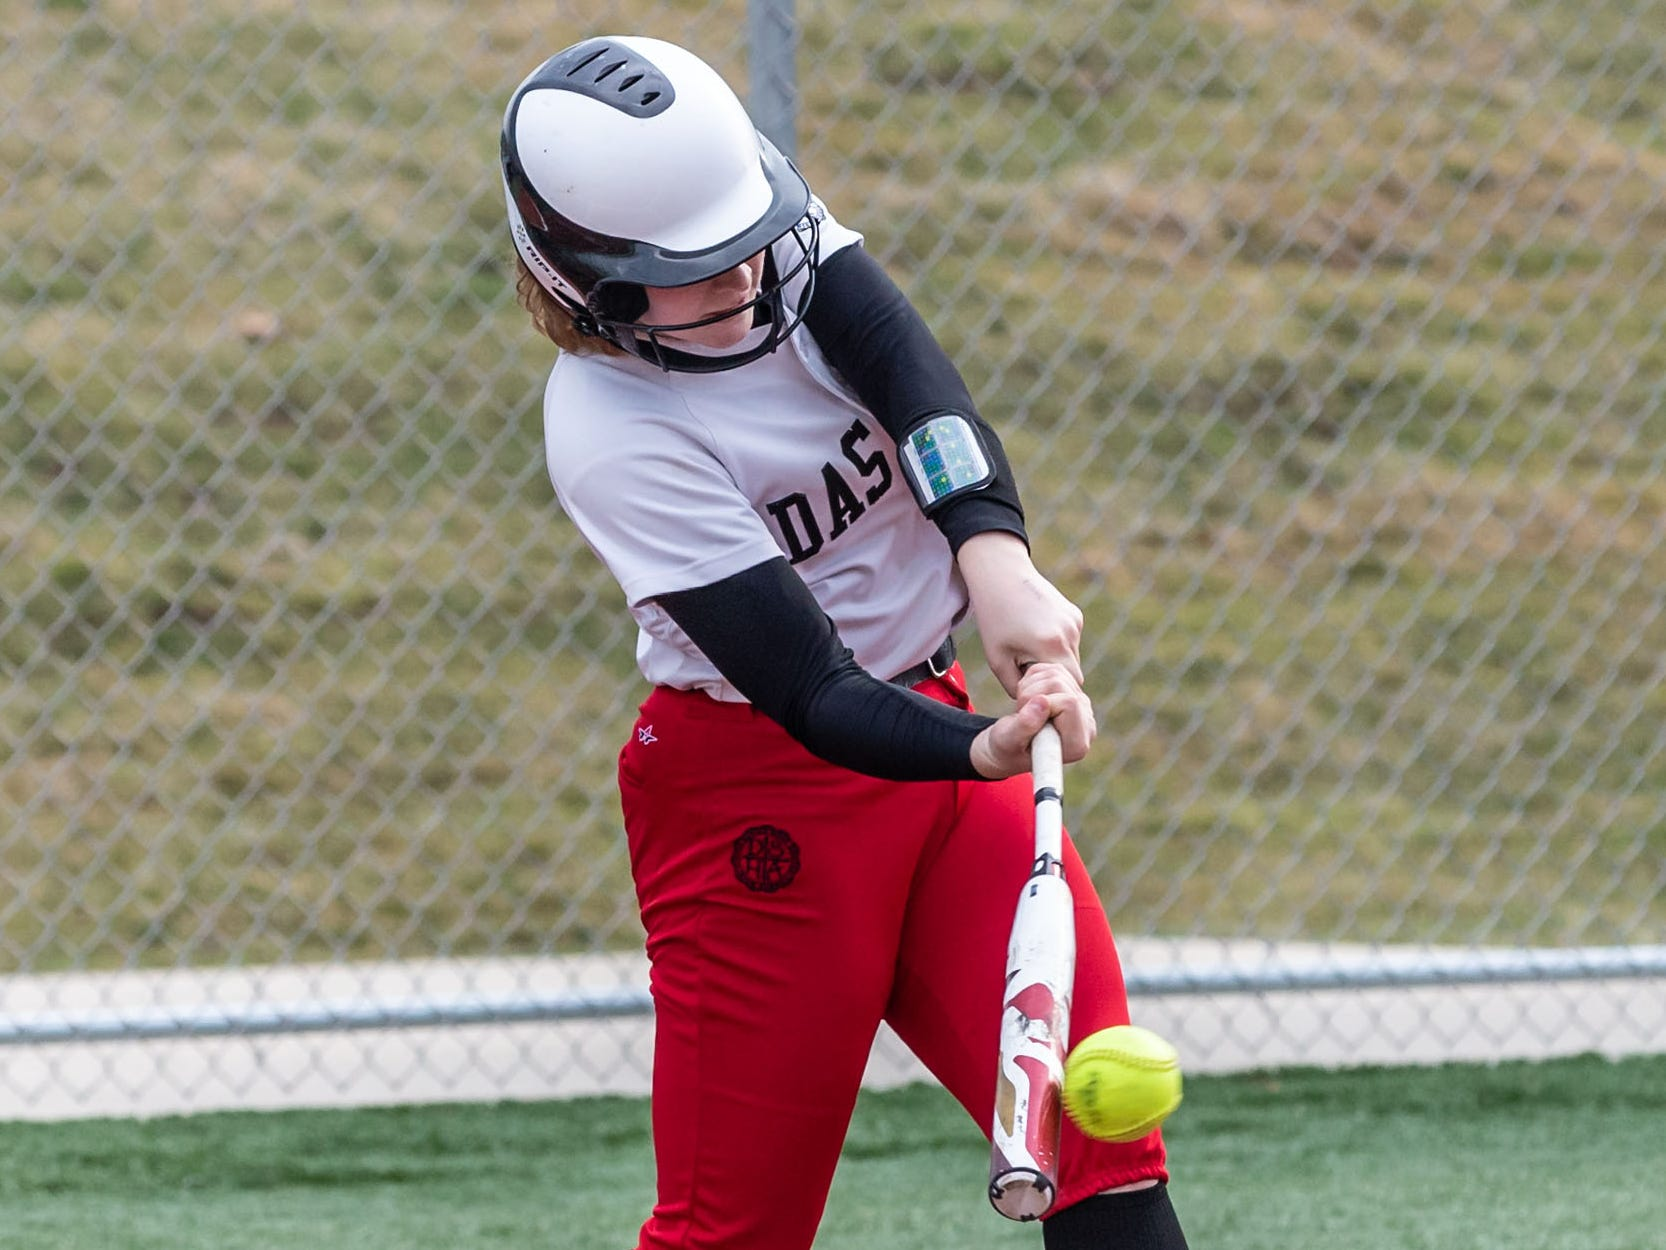 DSHA's Brooke Mackey connects for a single during the game at Wauwatosa West on Wednesday, April 17, 2019.